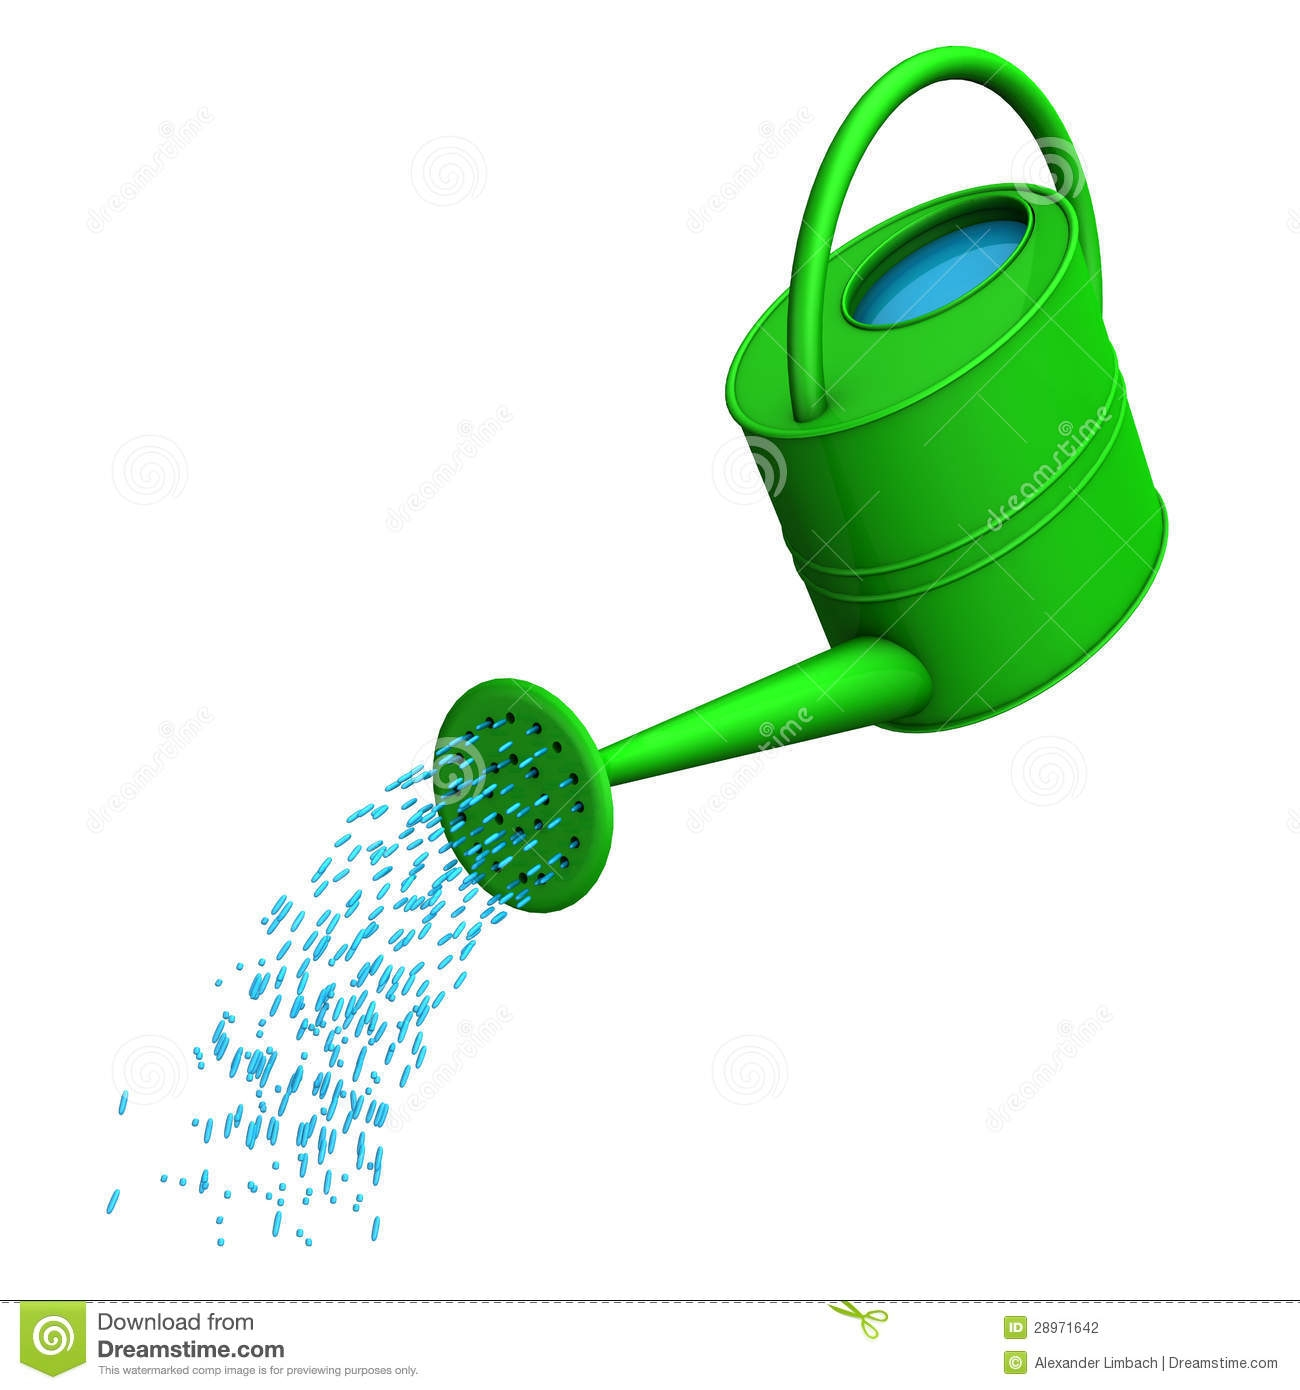 Watering water clipart.